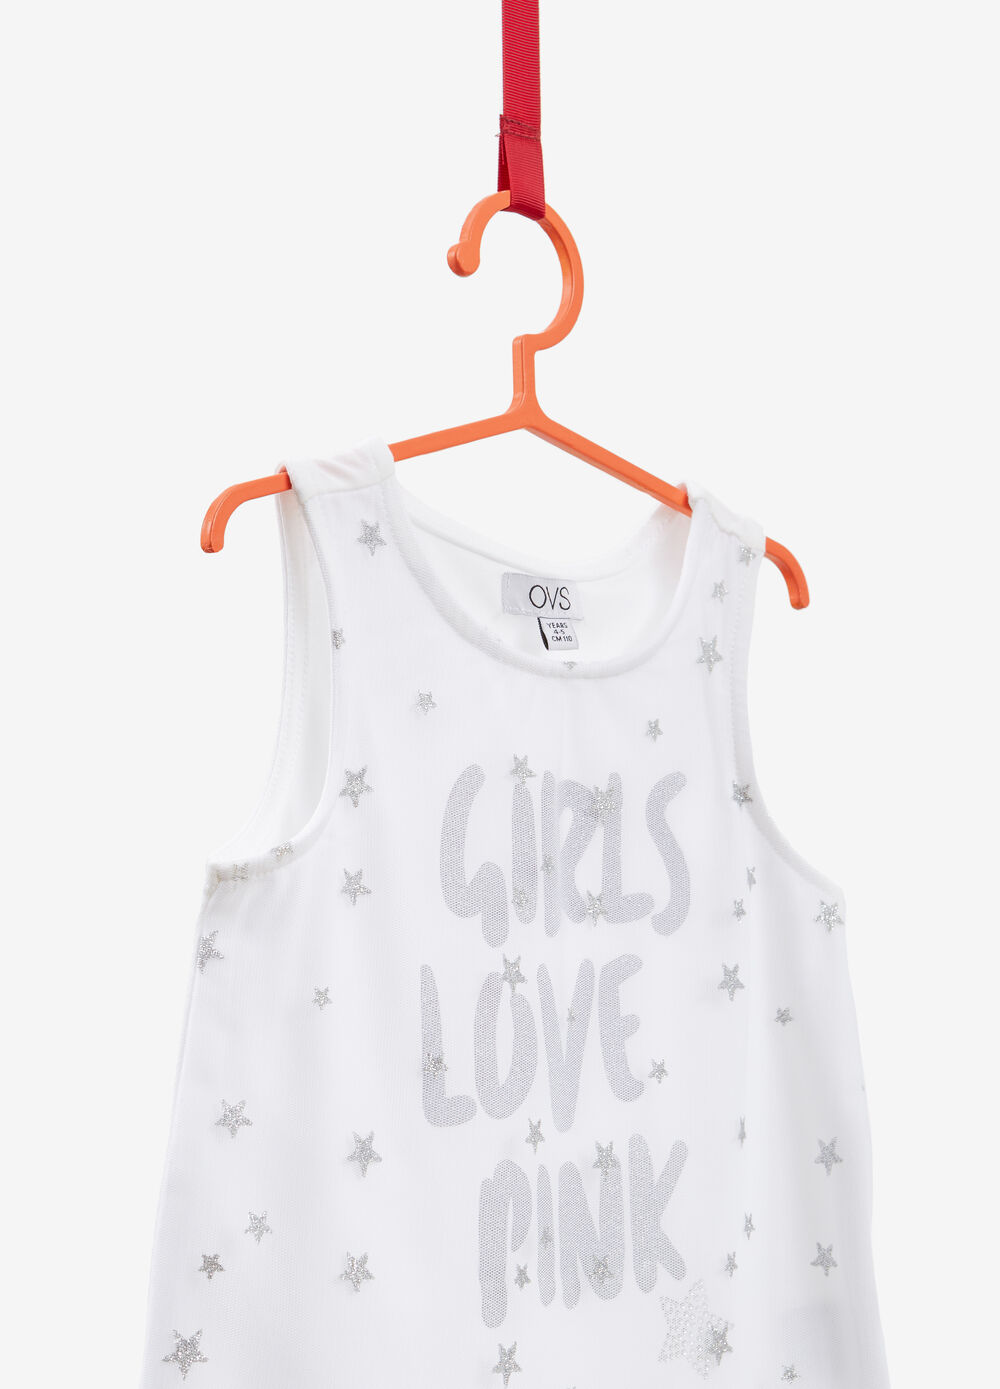 Stretch cotton top with glitter stars